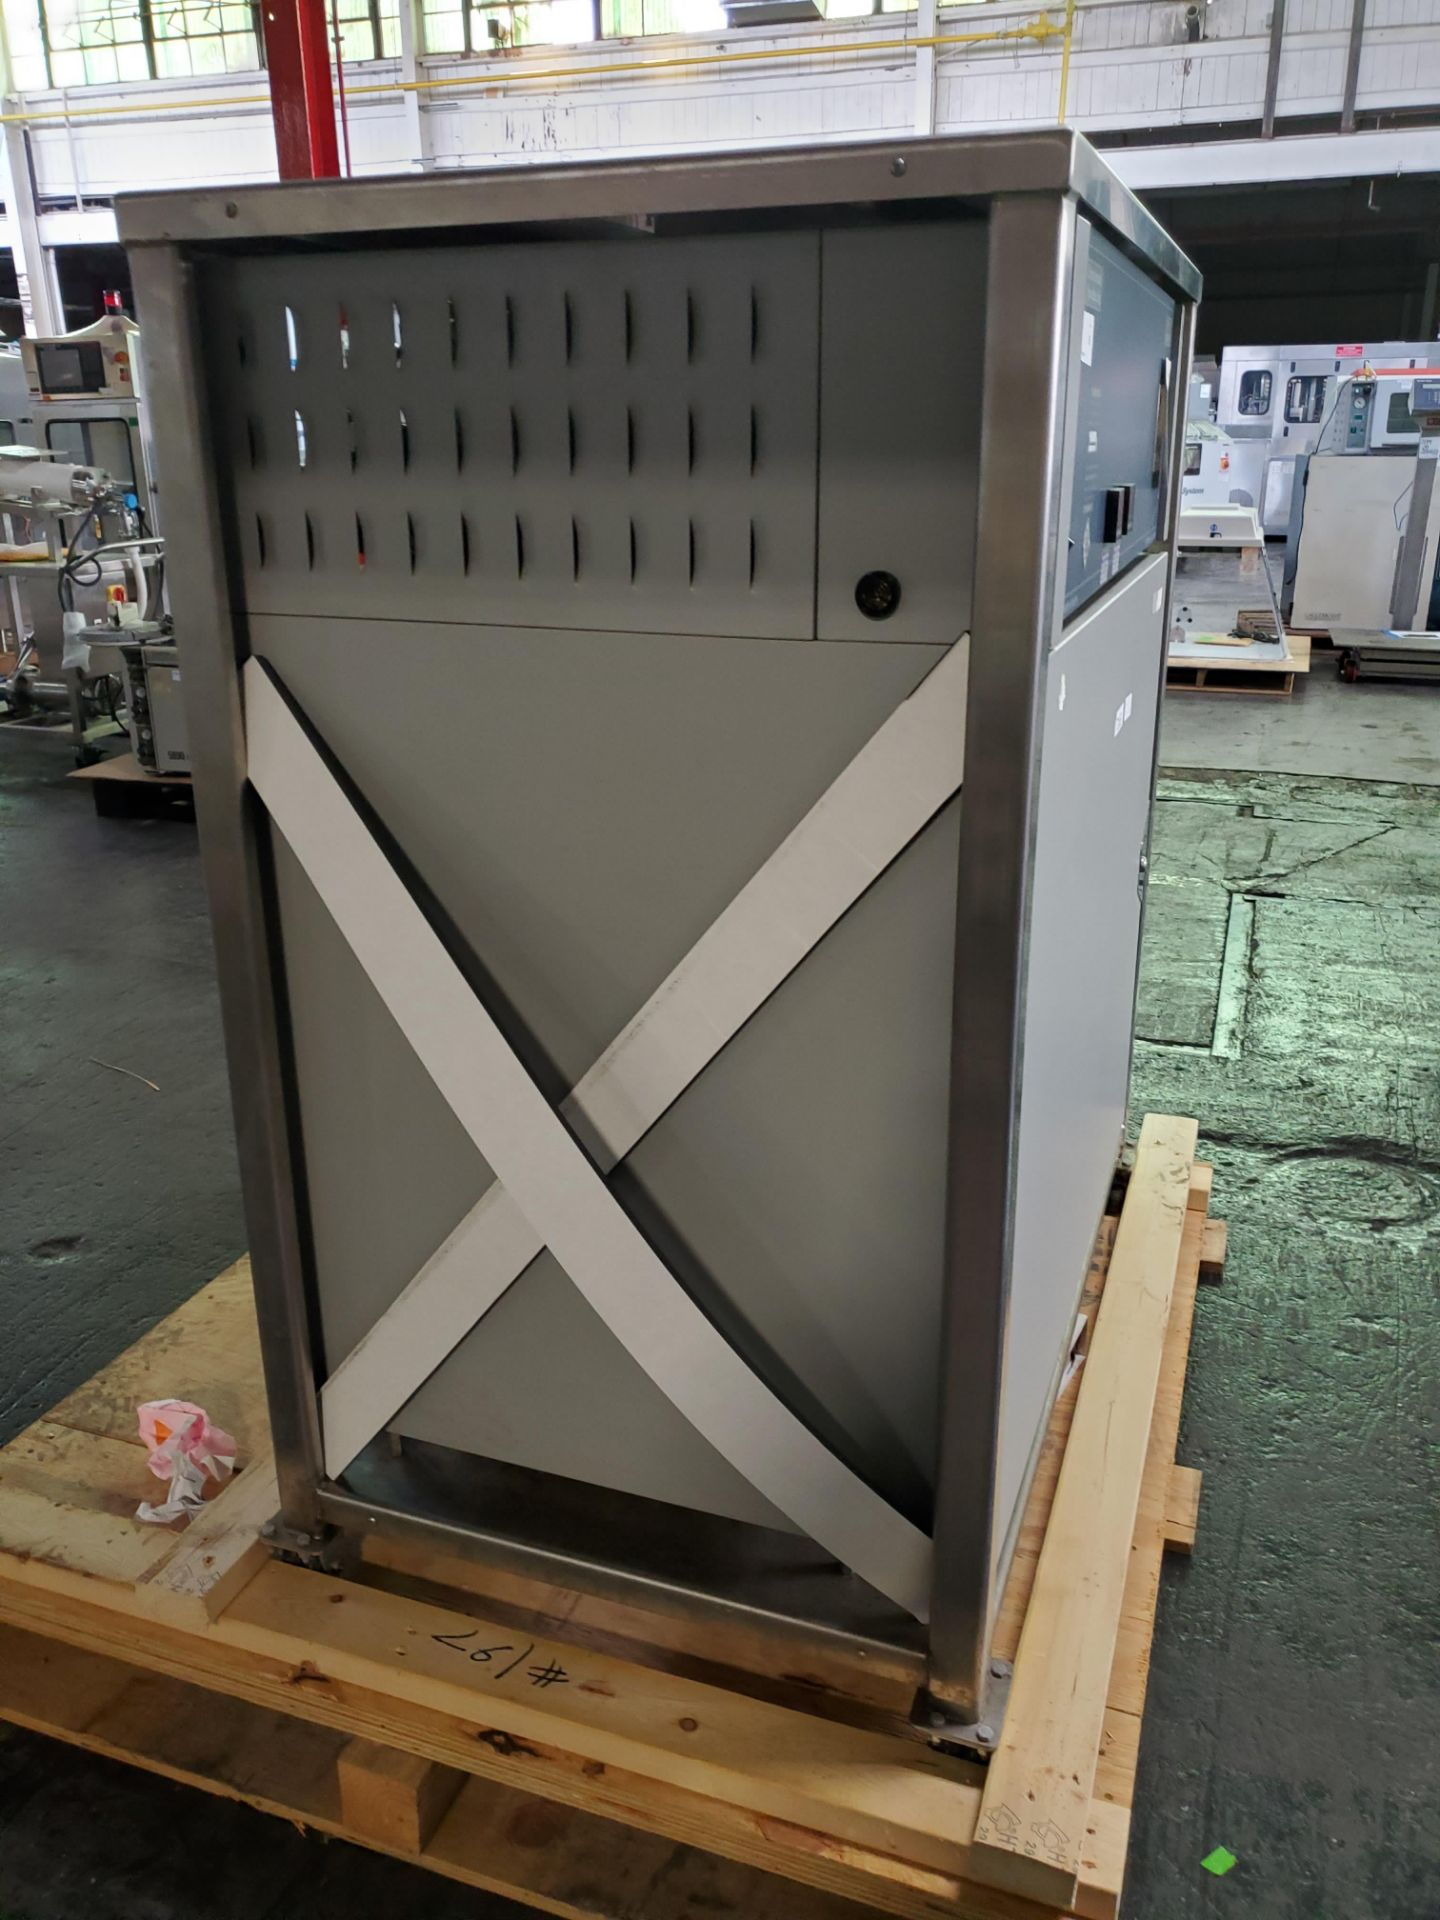 Environmental Specialties Stability Chamber, model ES2000 CDMD/BT, 0-70 C and 10-96% humidty - Image 5 of 7